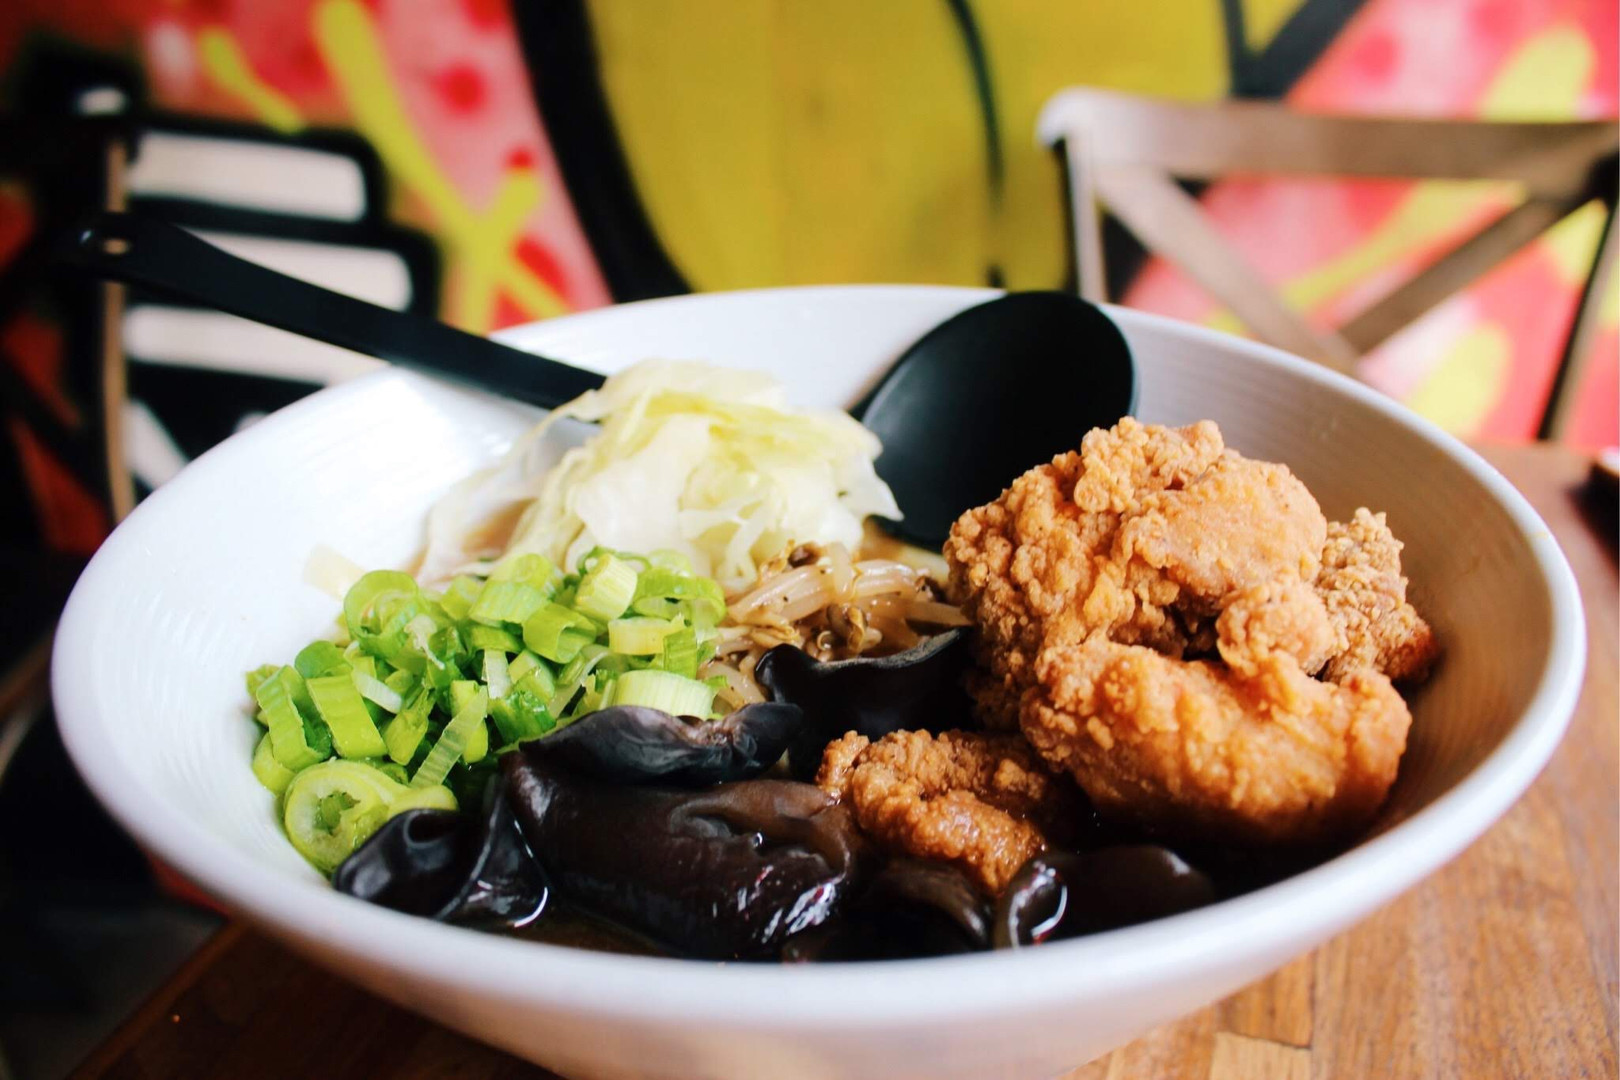 Fried chicken shoyu ramen from Pittsburgh's Ki Ramen